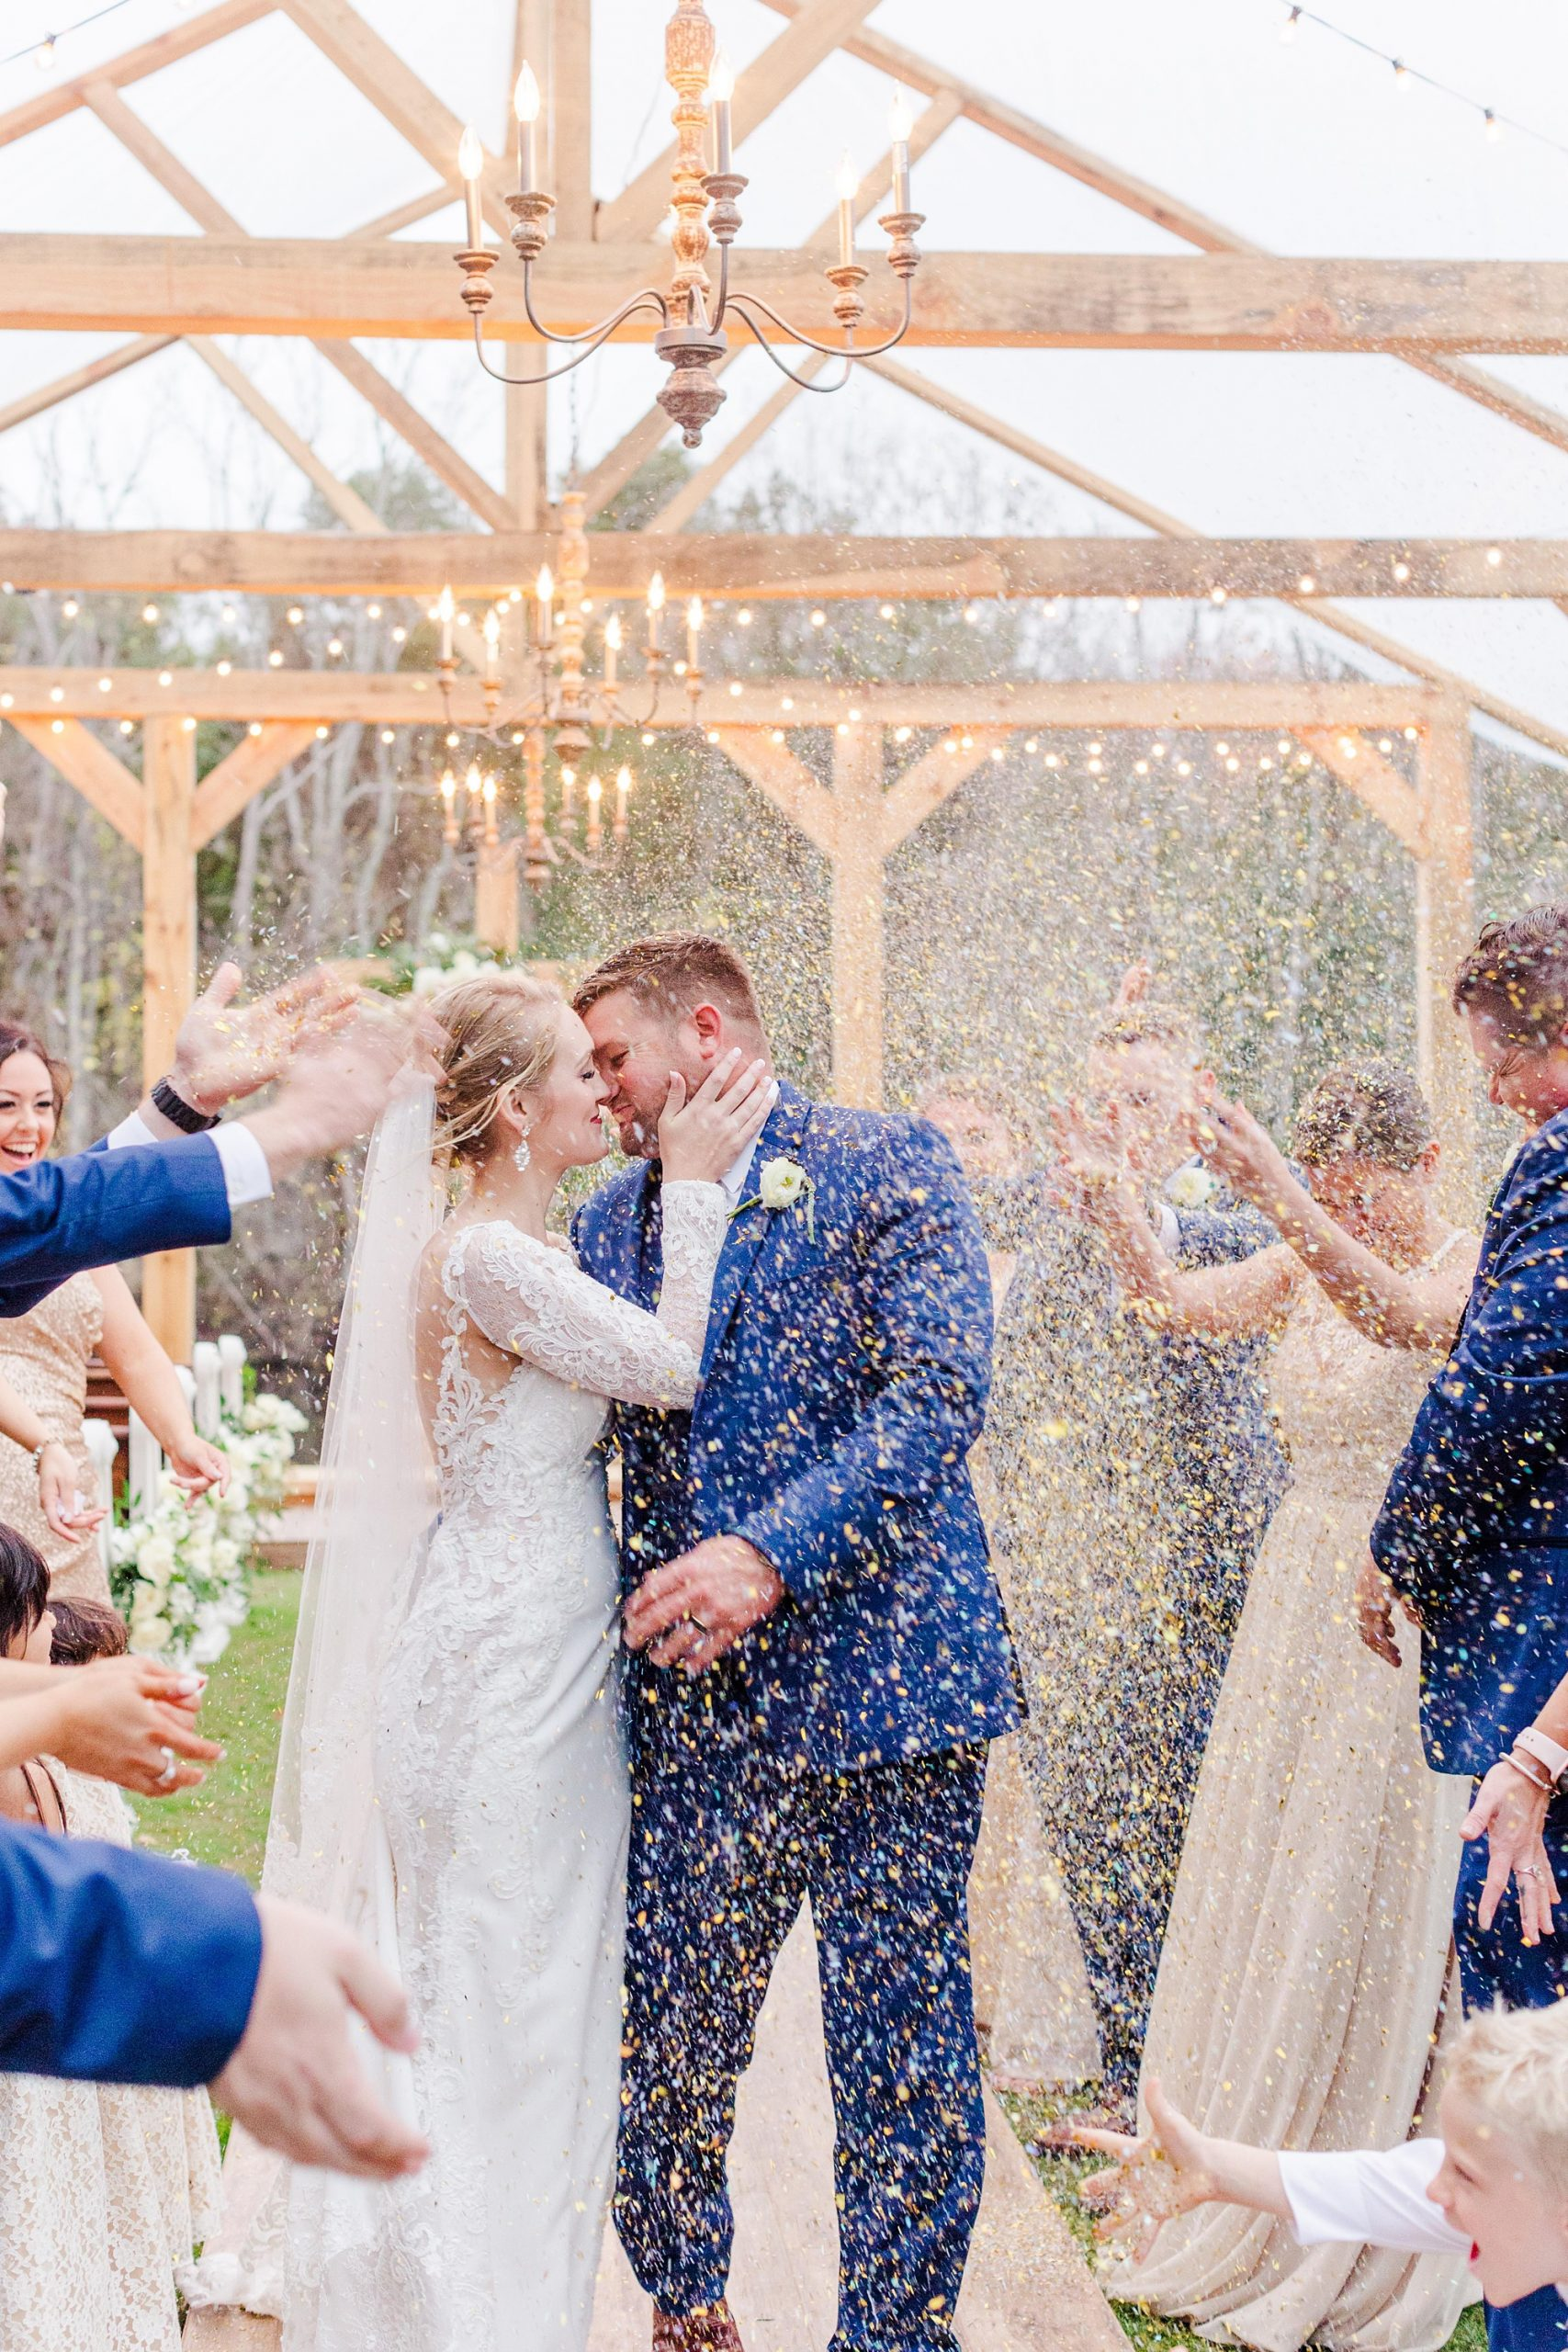 wedding party throws rice around bride and groom